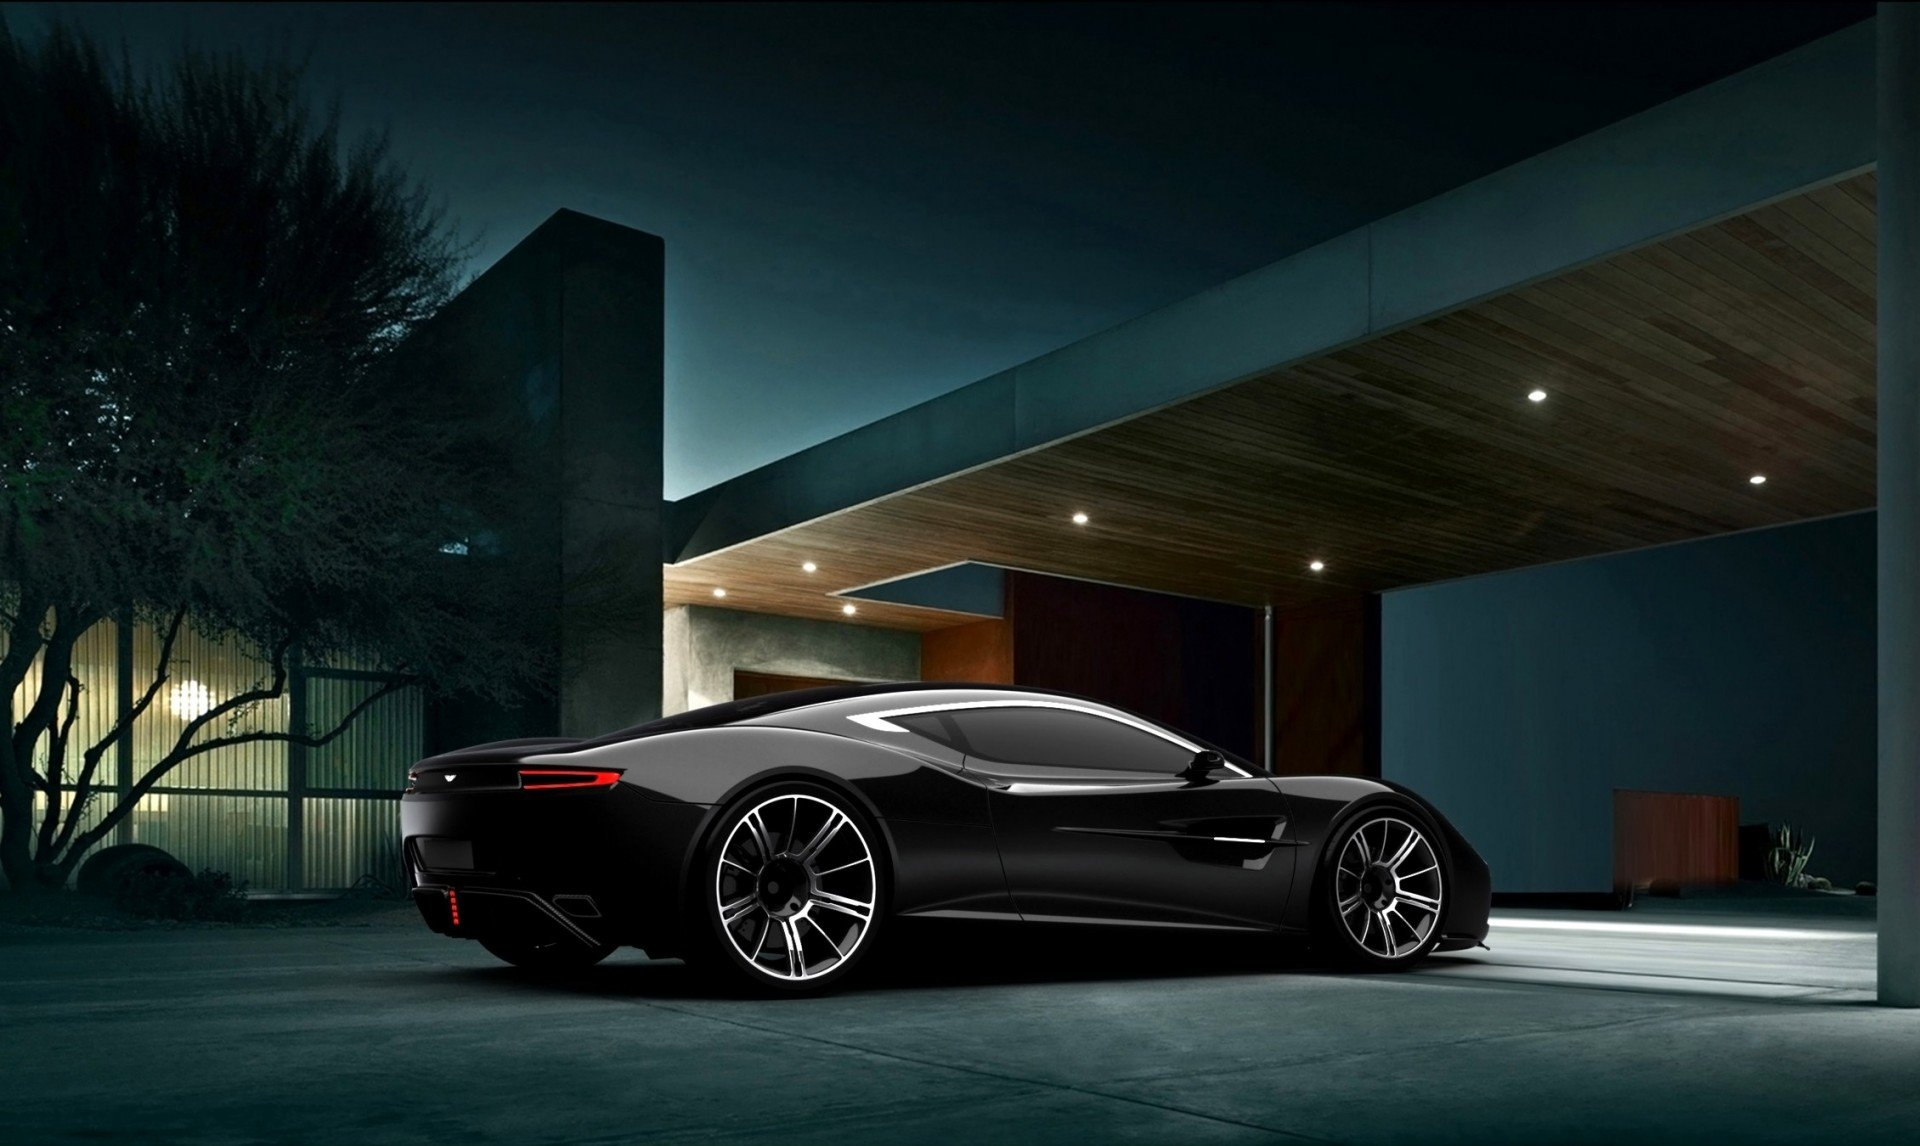 4k cars wallpapers,pictures,images,photos for desktop & Life Vehicles Night Car House Resources Light Luxury Will Be Rich Quotes 1920x1146 Wallpaper Teahub Io